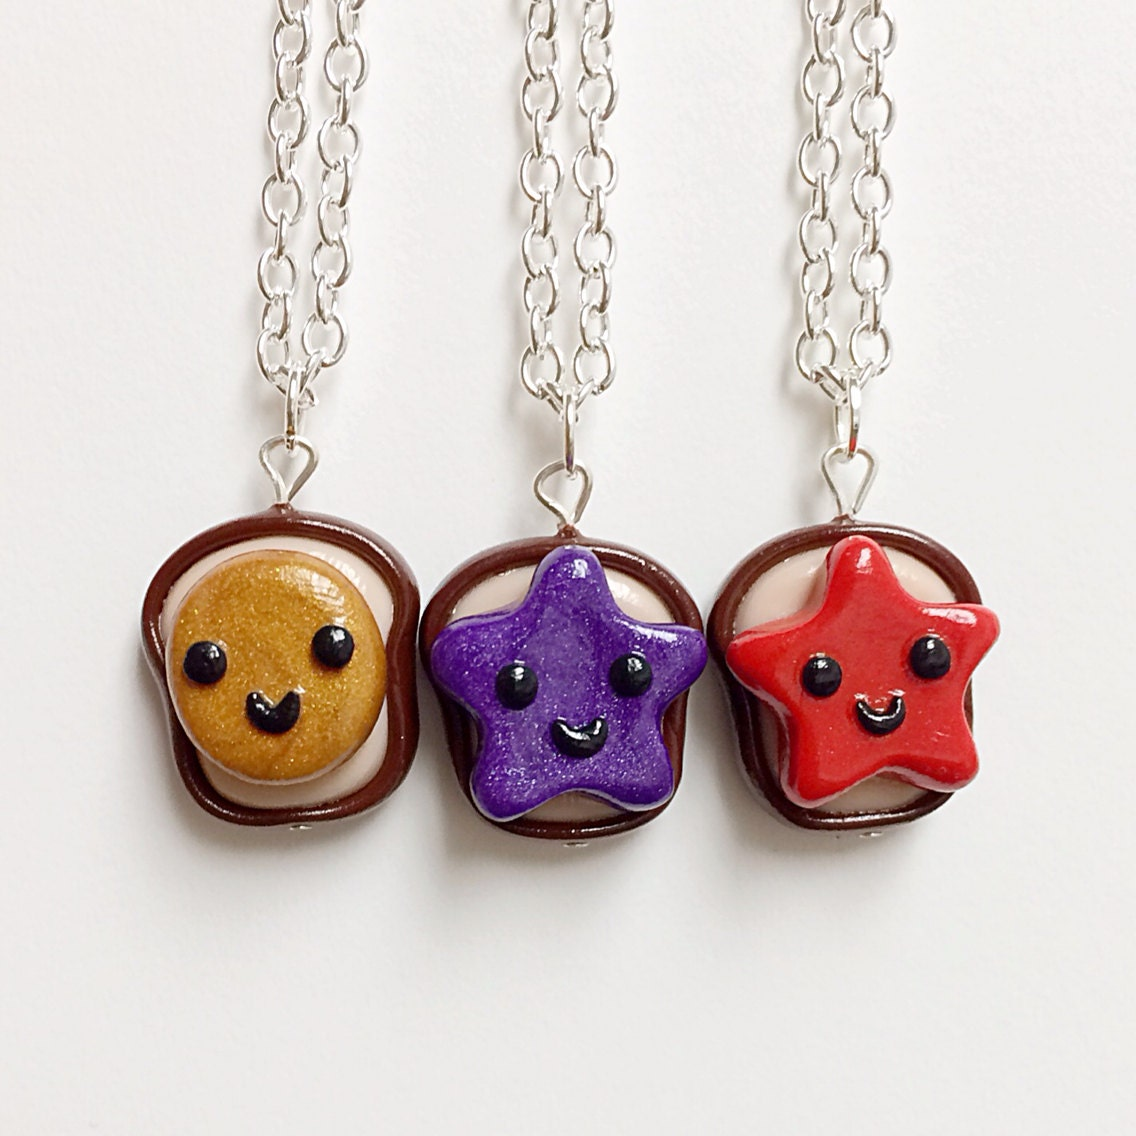 3 best friend necklaces peanut butter strawberry and grape